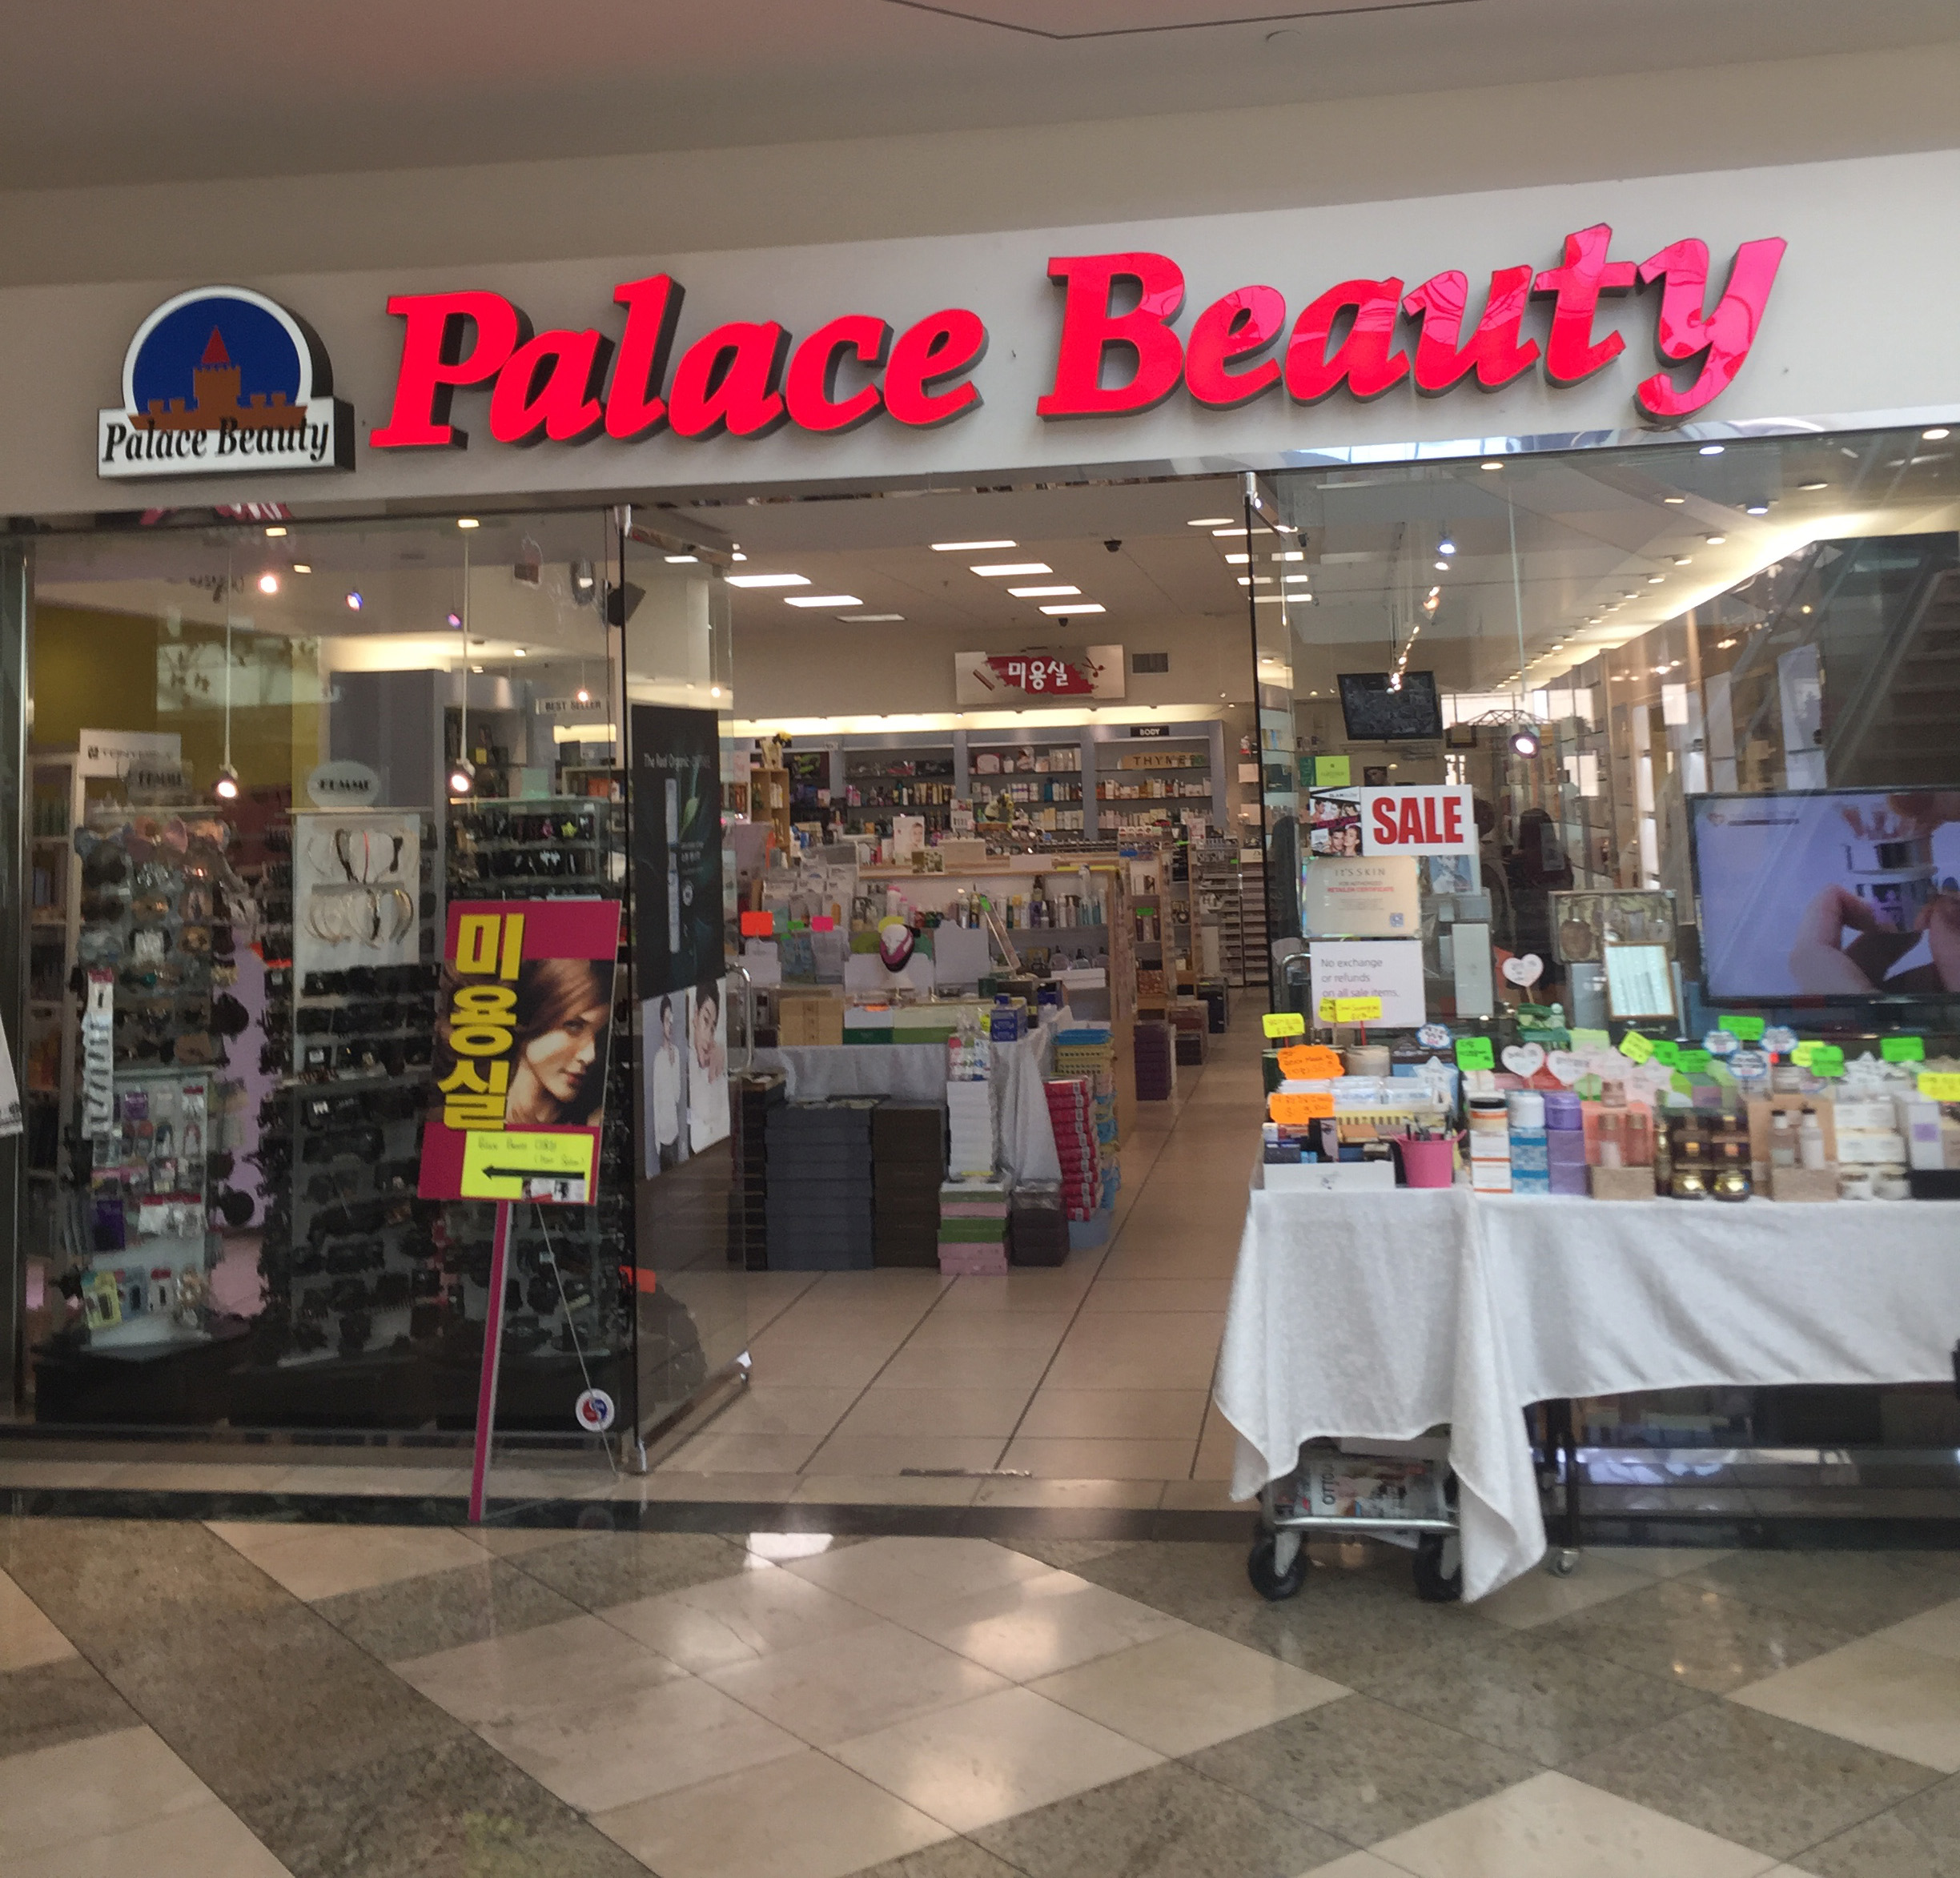 #214 Palace Beauty